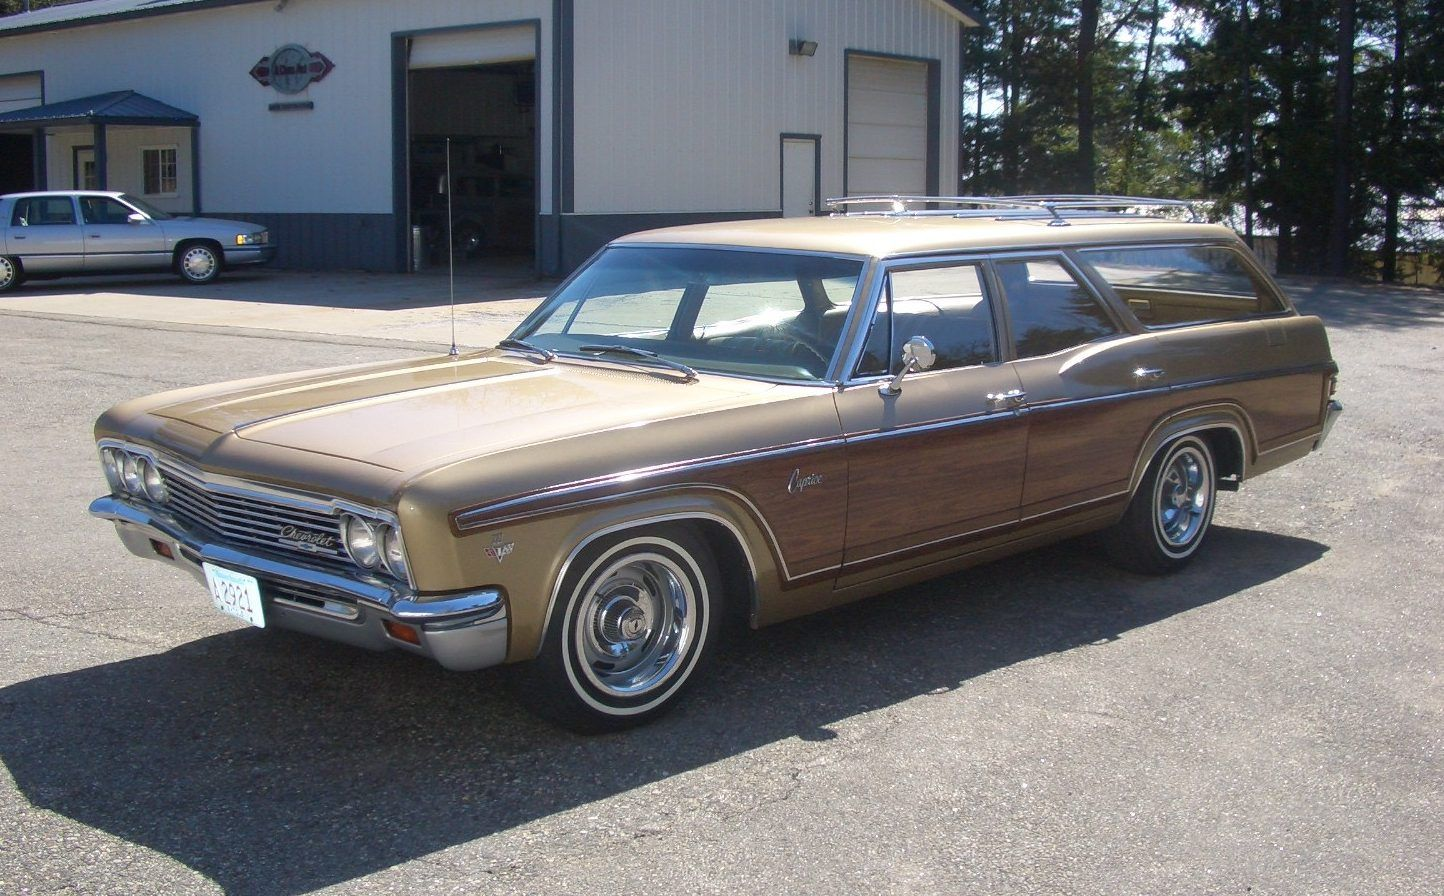 1966 Chevrolet Caprice Wagon Bring A Trailer Us Based Automakers Chevy For Sale